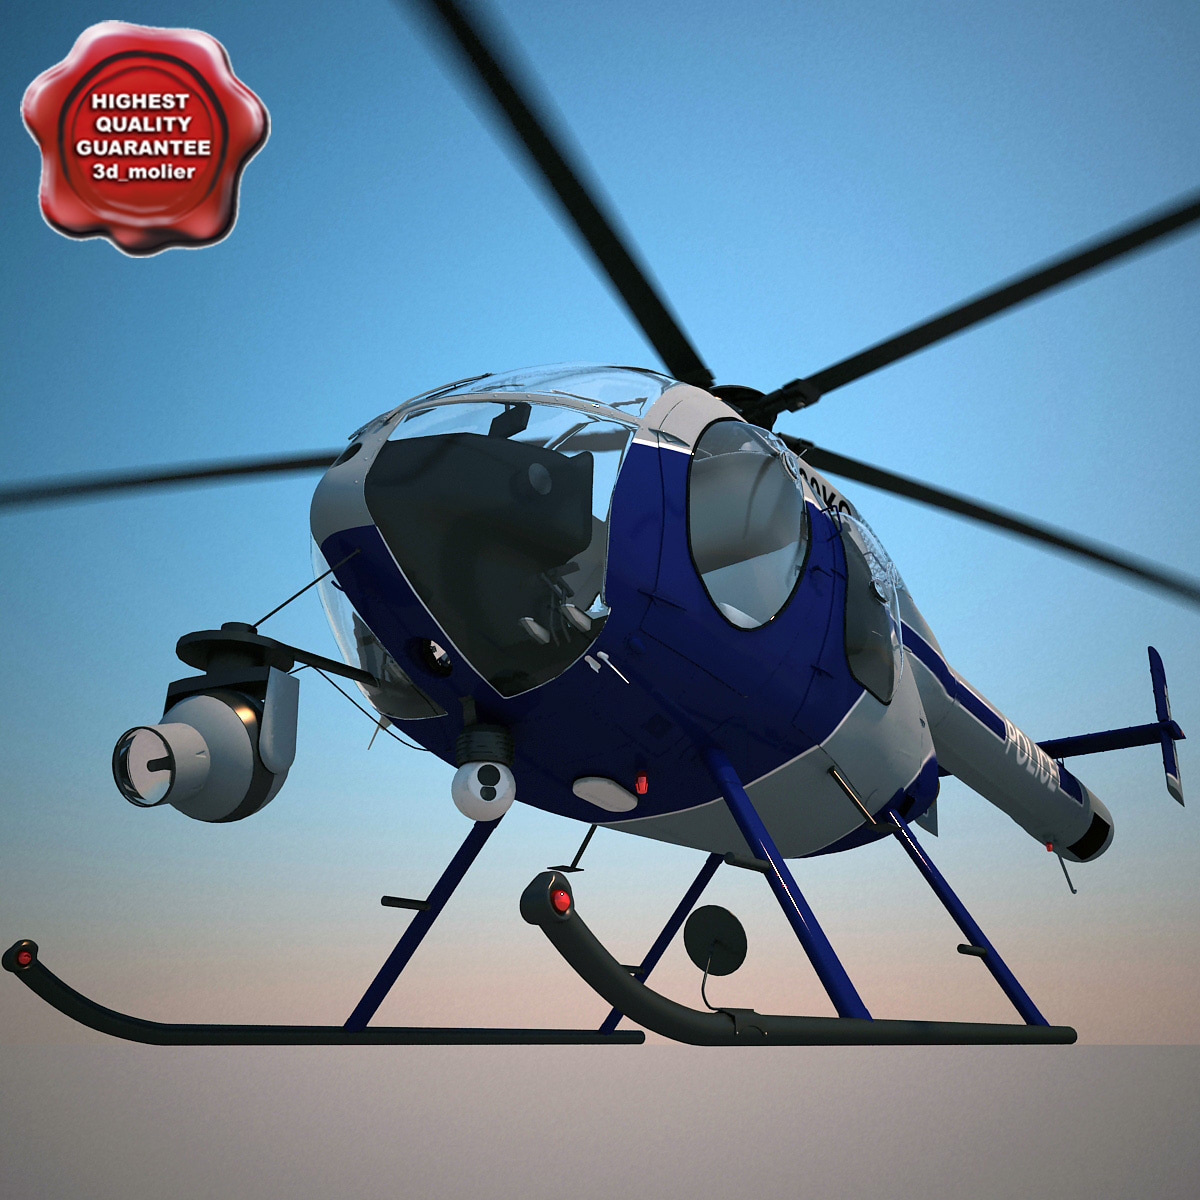 Helicopter_MD_520N_Pilice_00.jpg